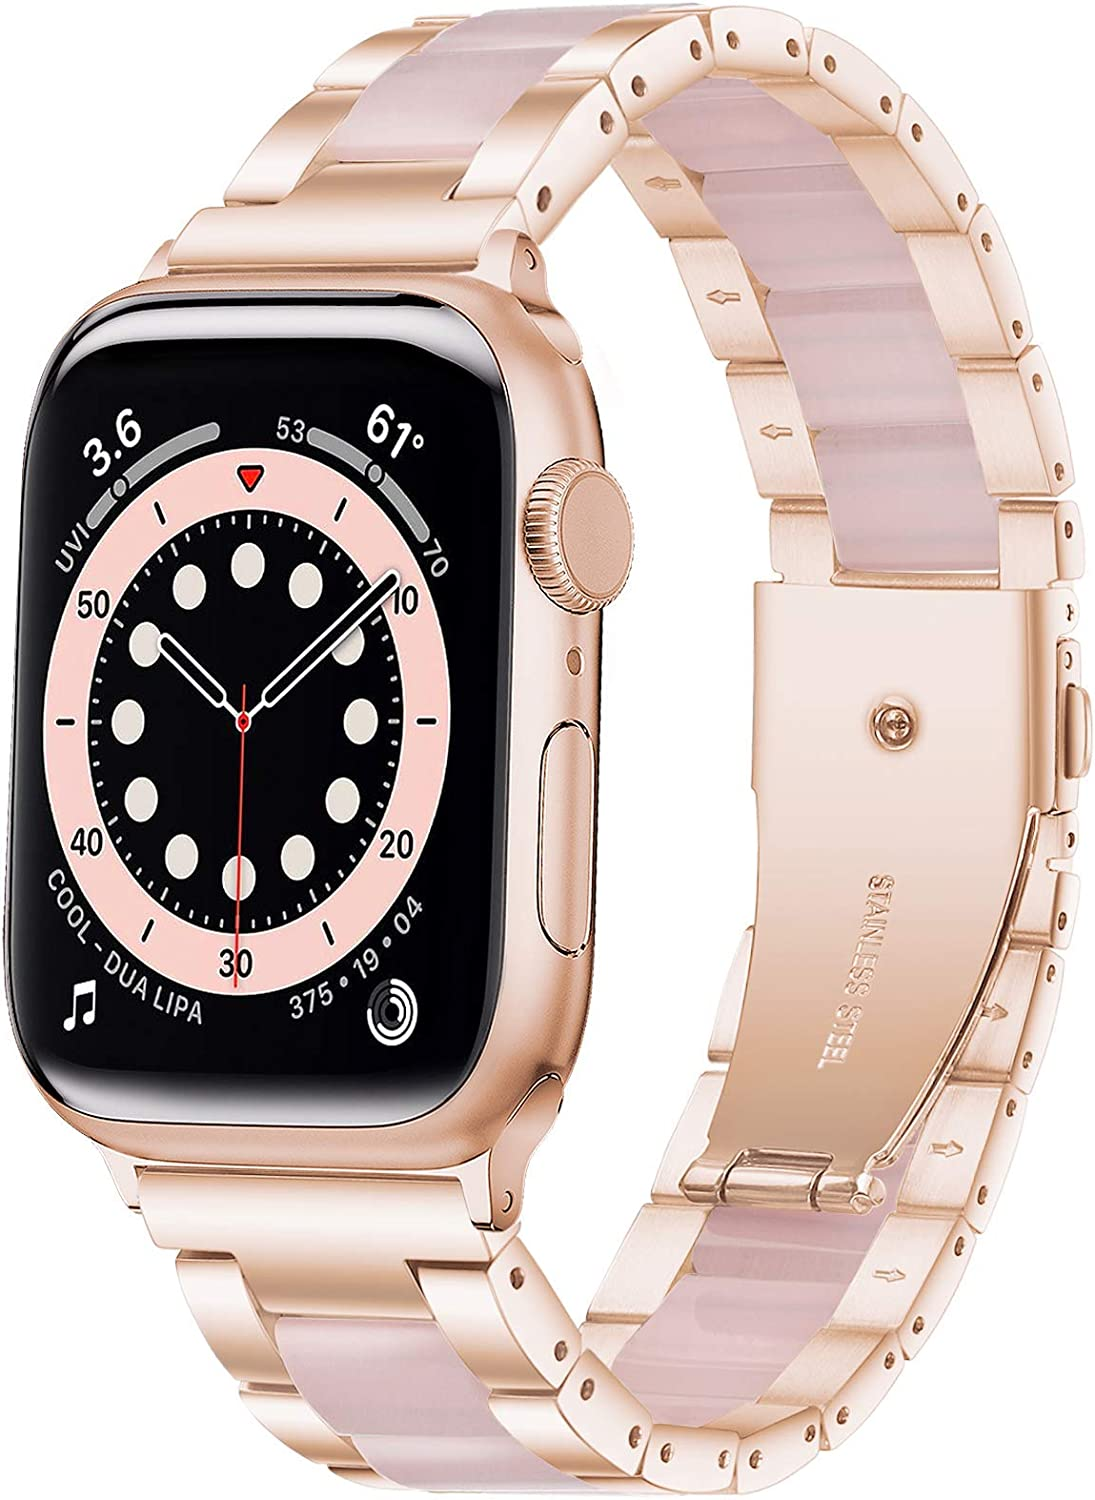 Wipalor Resin Stainless Steel Band Compatible with Apple Watch Band 38mm 40mm, Watch Bracelet Rose Gold for iWatch, Men and Women Replacement Band for Apple Watch Series 6 5 4 3 2 1 SE (Bright Pink)